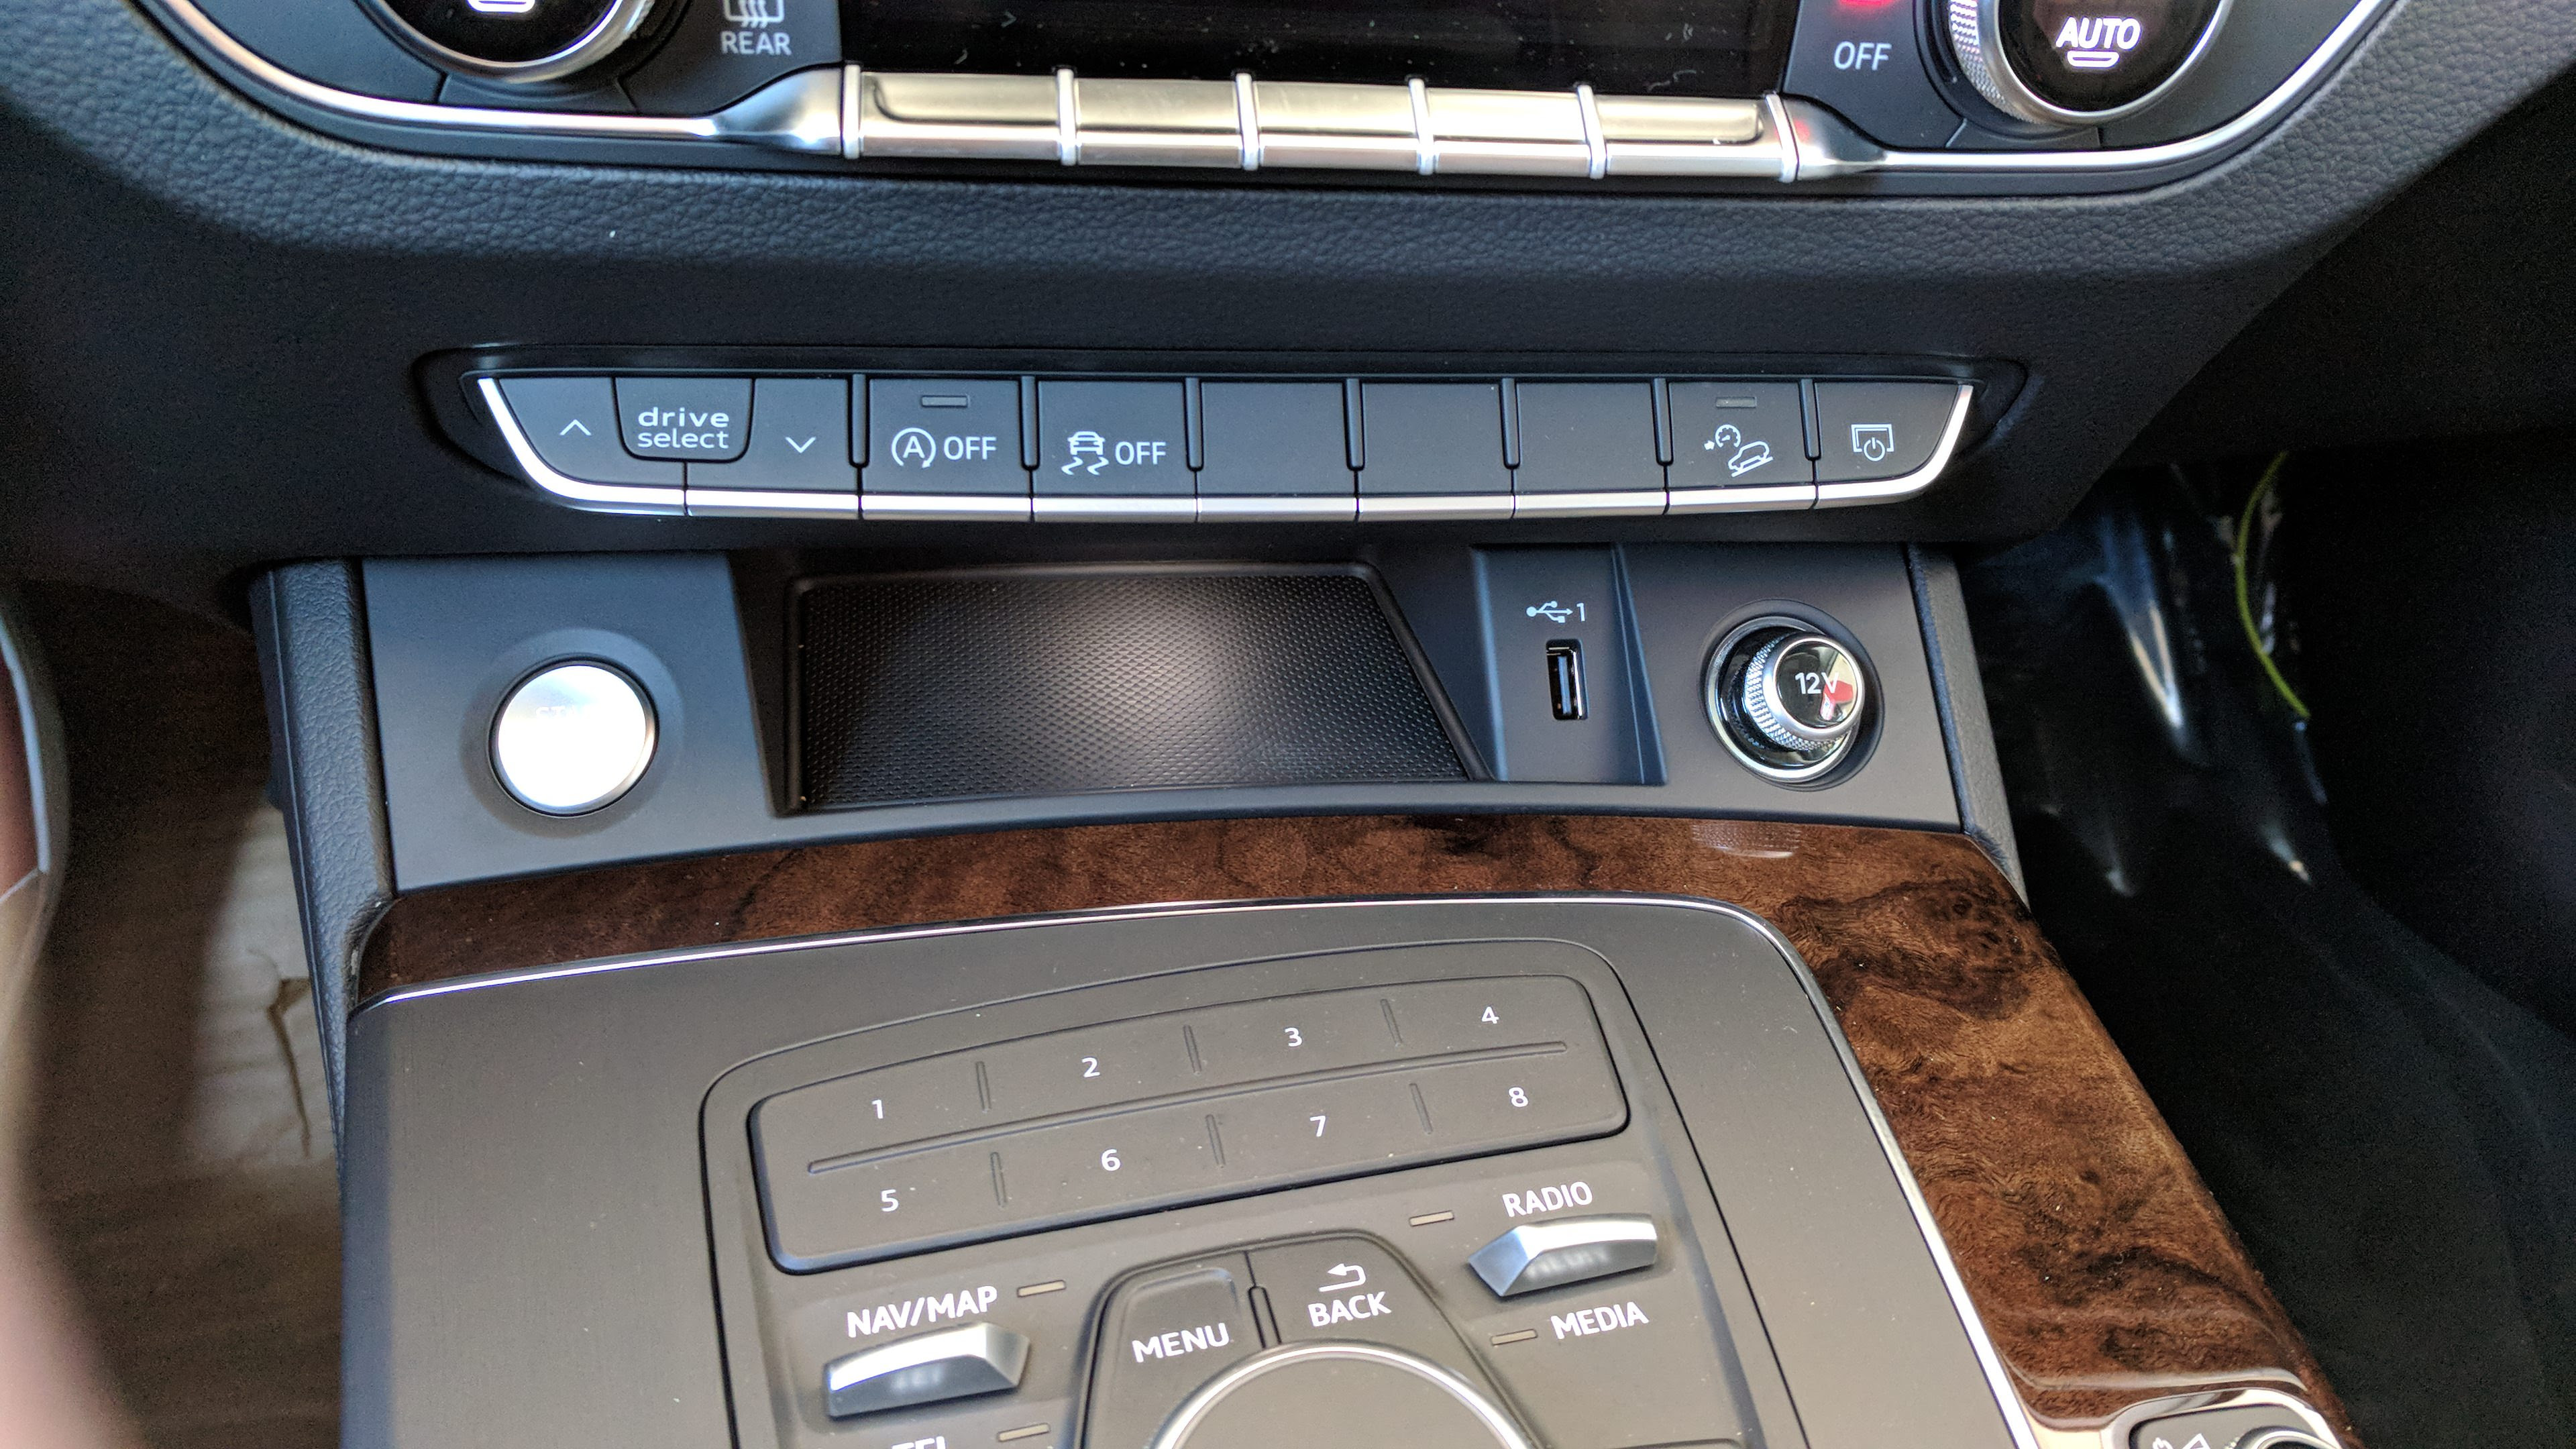 Audi Q7 Usb Port Location 2015